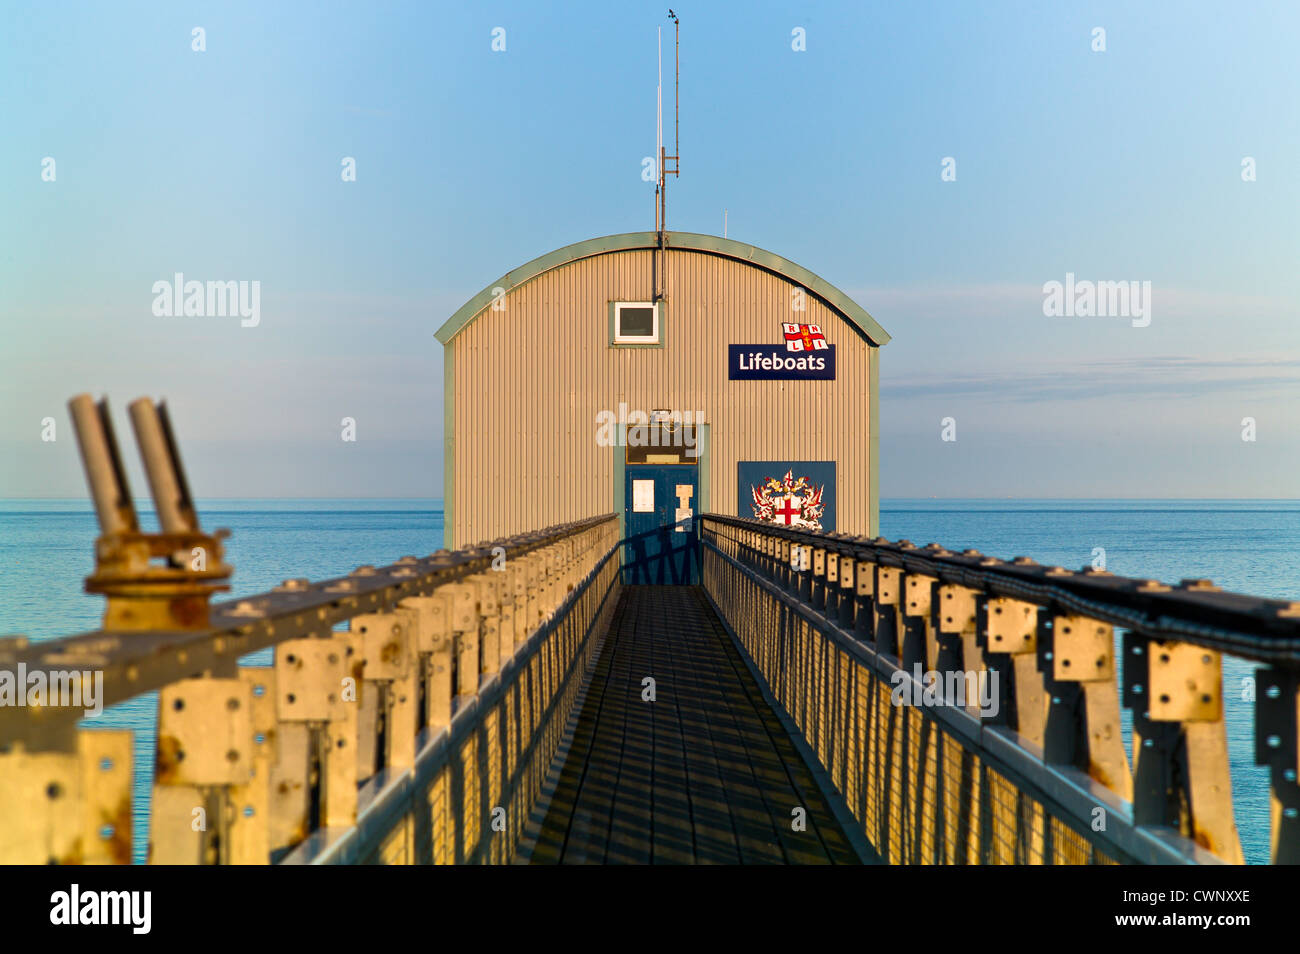 Selsey Lifeboat station seen from gangway with maroon, rocket launchers, on the left - Stock Image